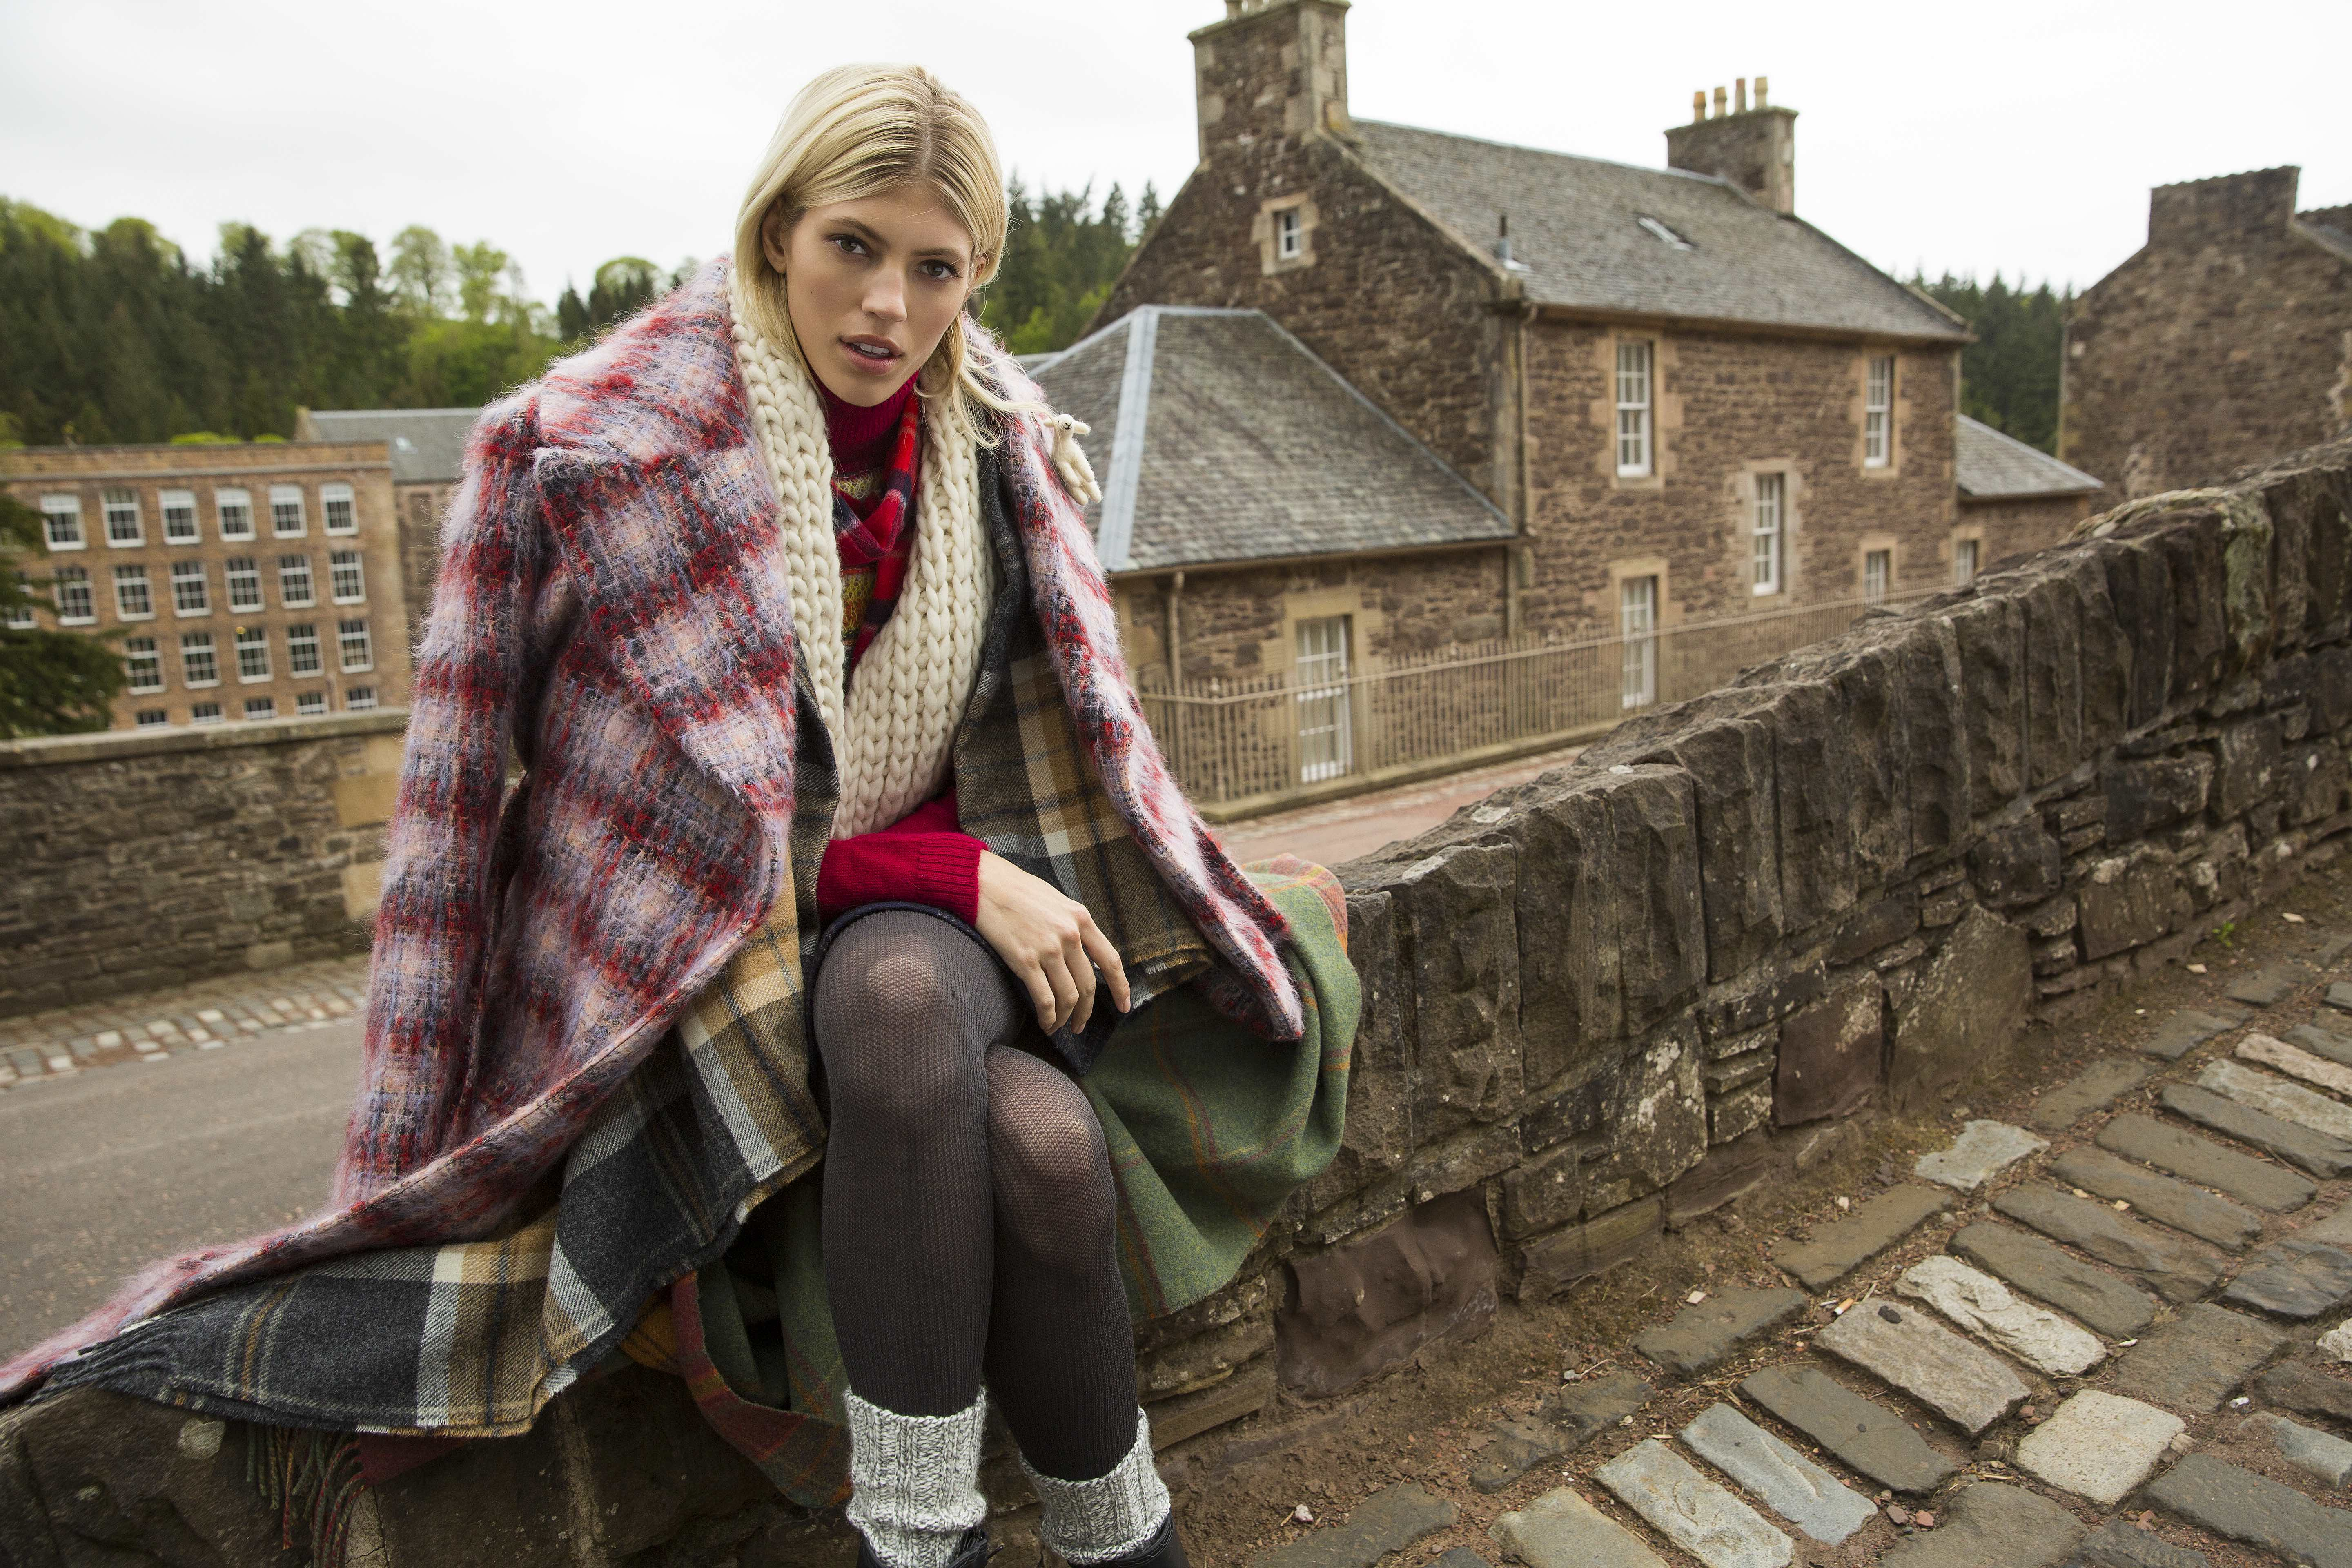 Wool has long been a part of the fashion industry - Image courtesy of The Campaign for Wool